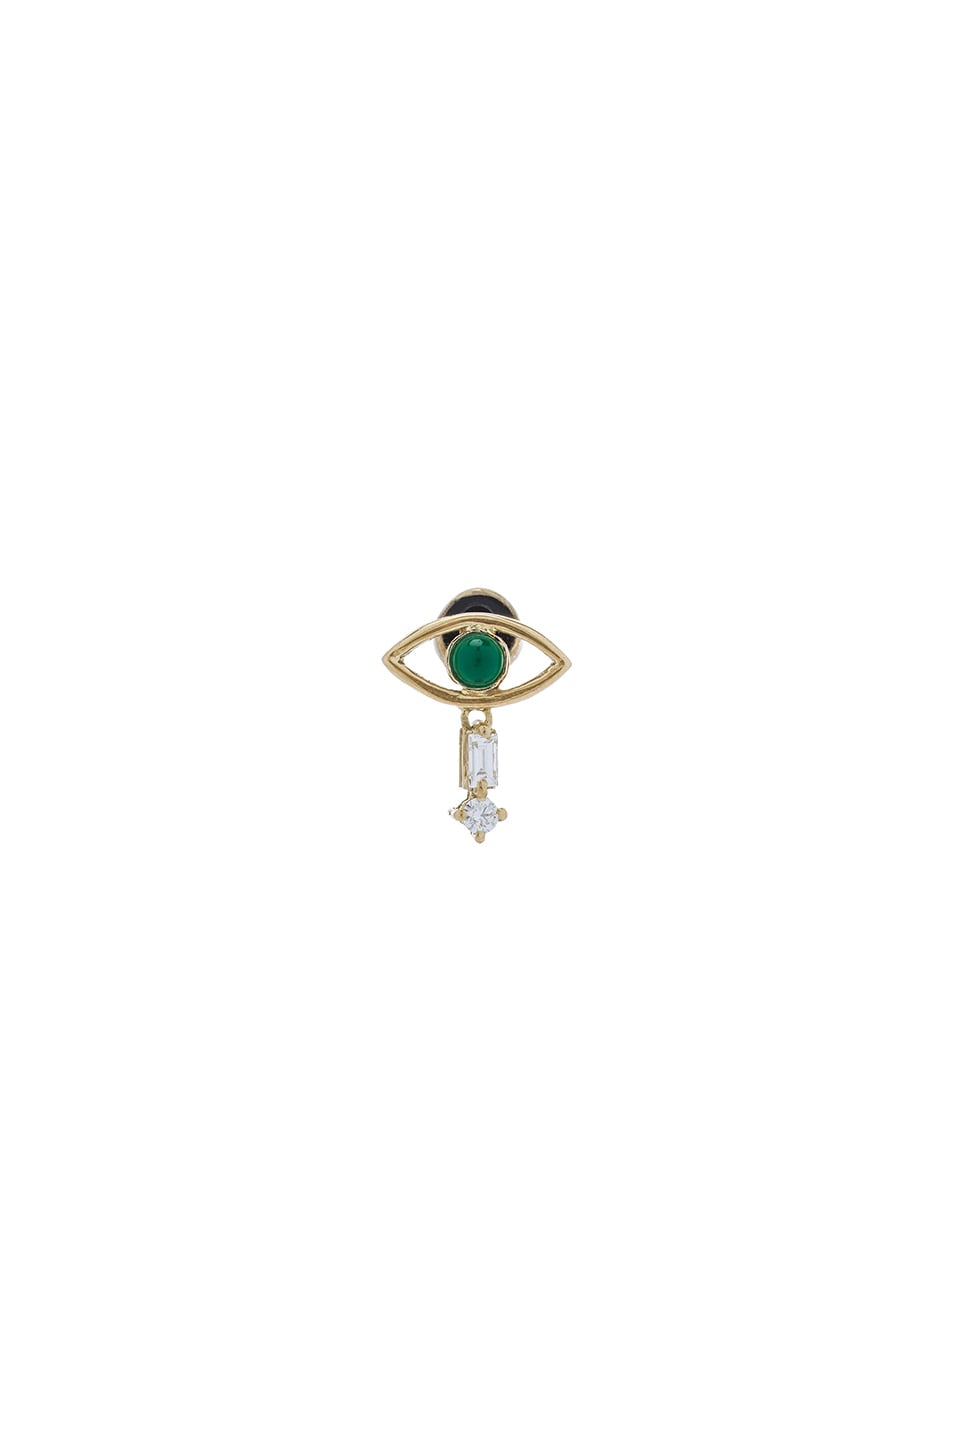 Image 1 of Ileana Makri Tiny Single Eye Stud Earring in Yellow Gold & Emerald